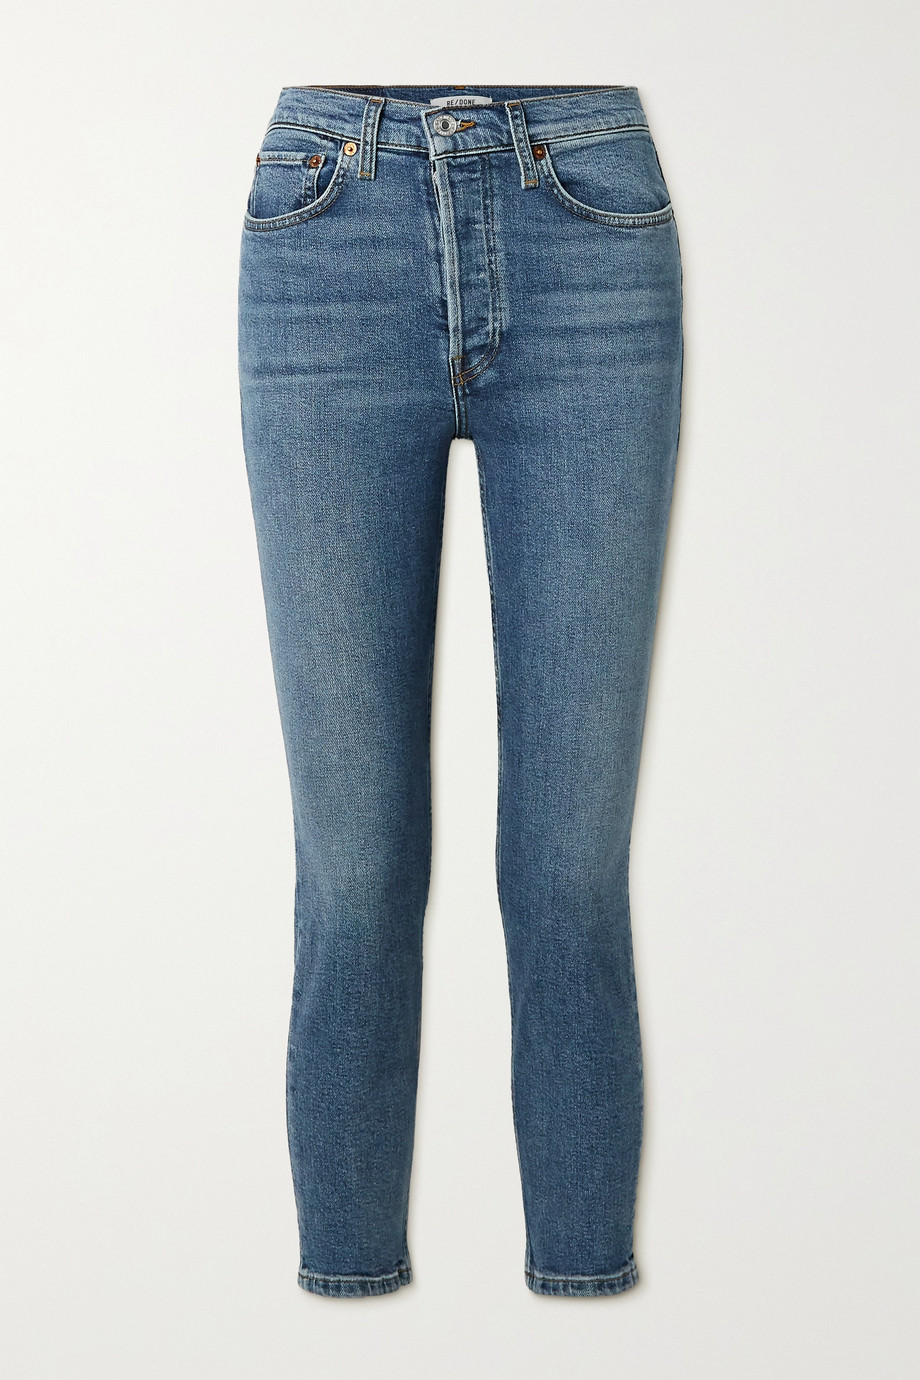 RE/DONE Jean skinny Comfort Stretch High-Rise Ankle Crop 90s